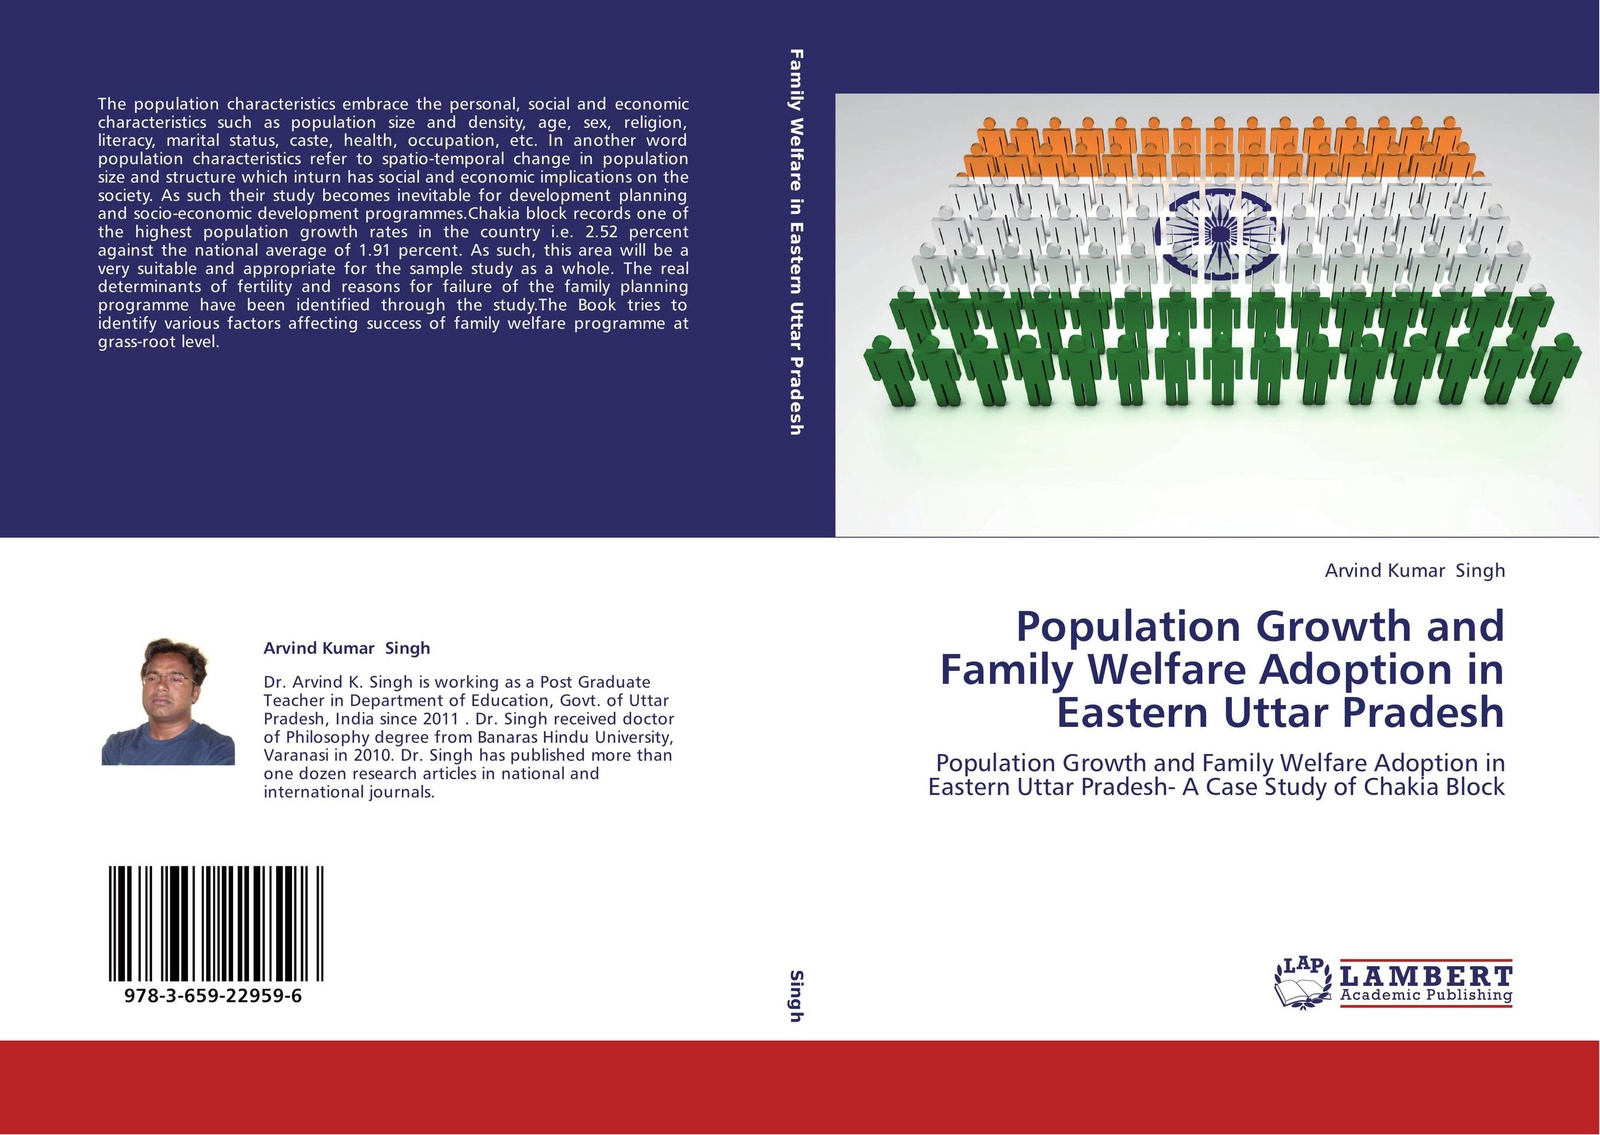 цены Arvind kumar singh Population Growth and Family Welfare Adoption in Eastern Uttar Pradesh